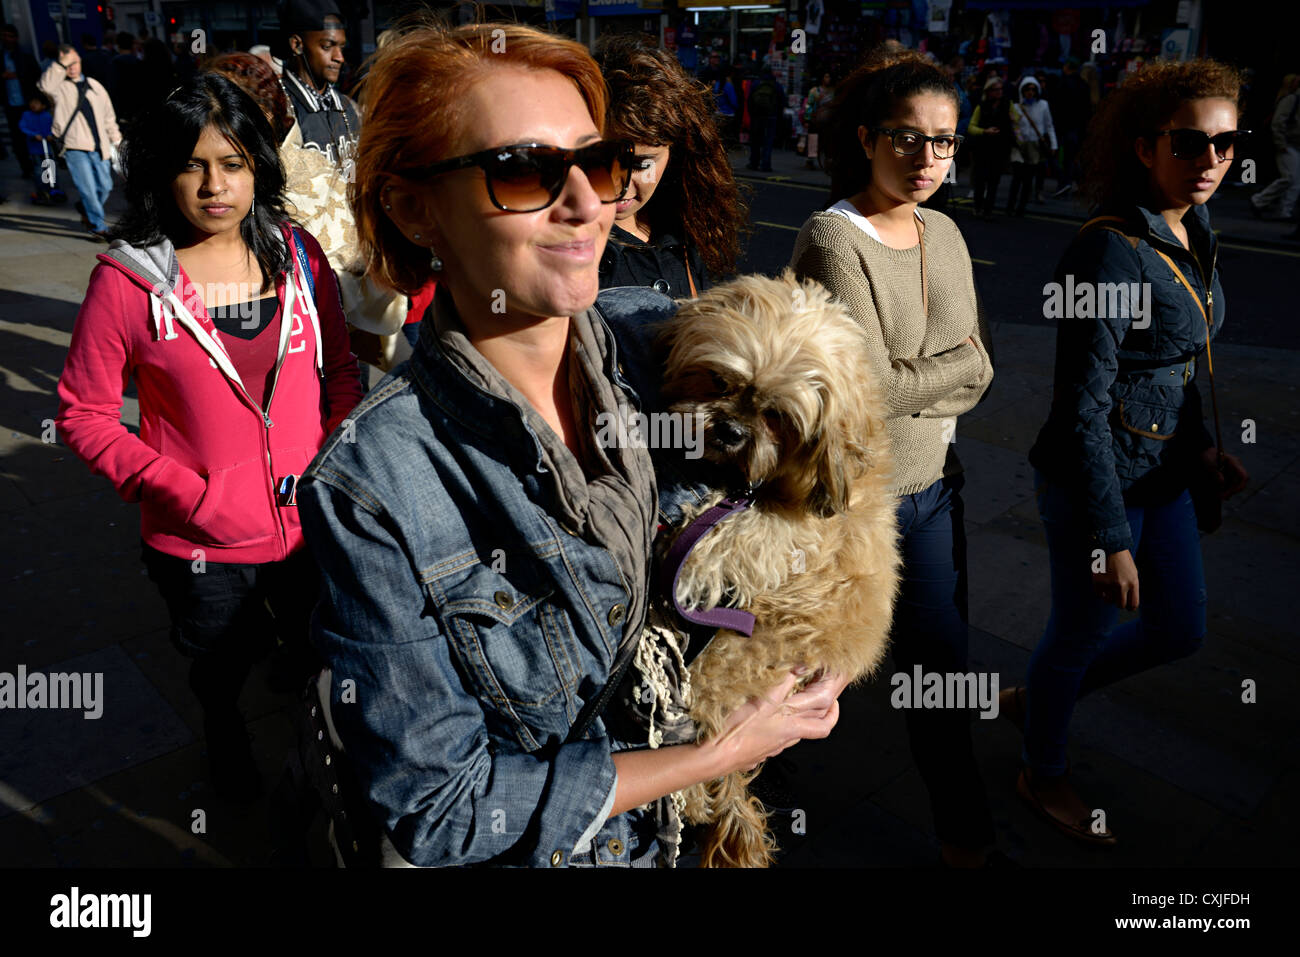 dog owner picadilly london - Stock Image